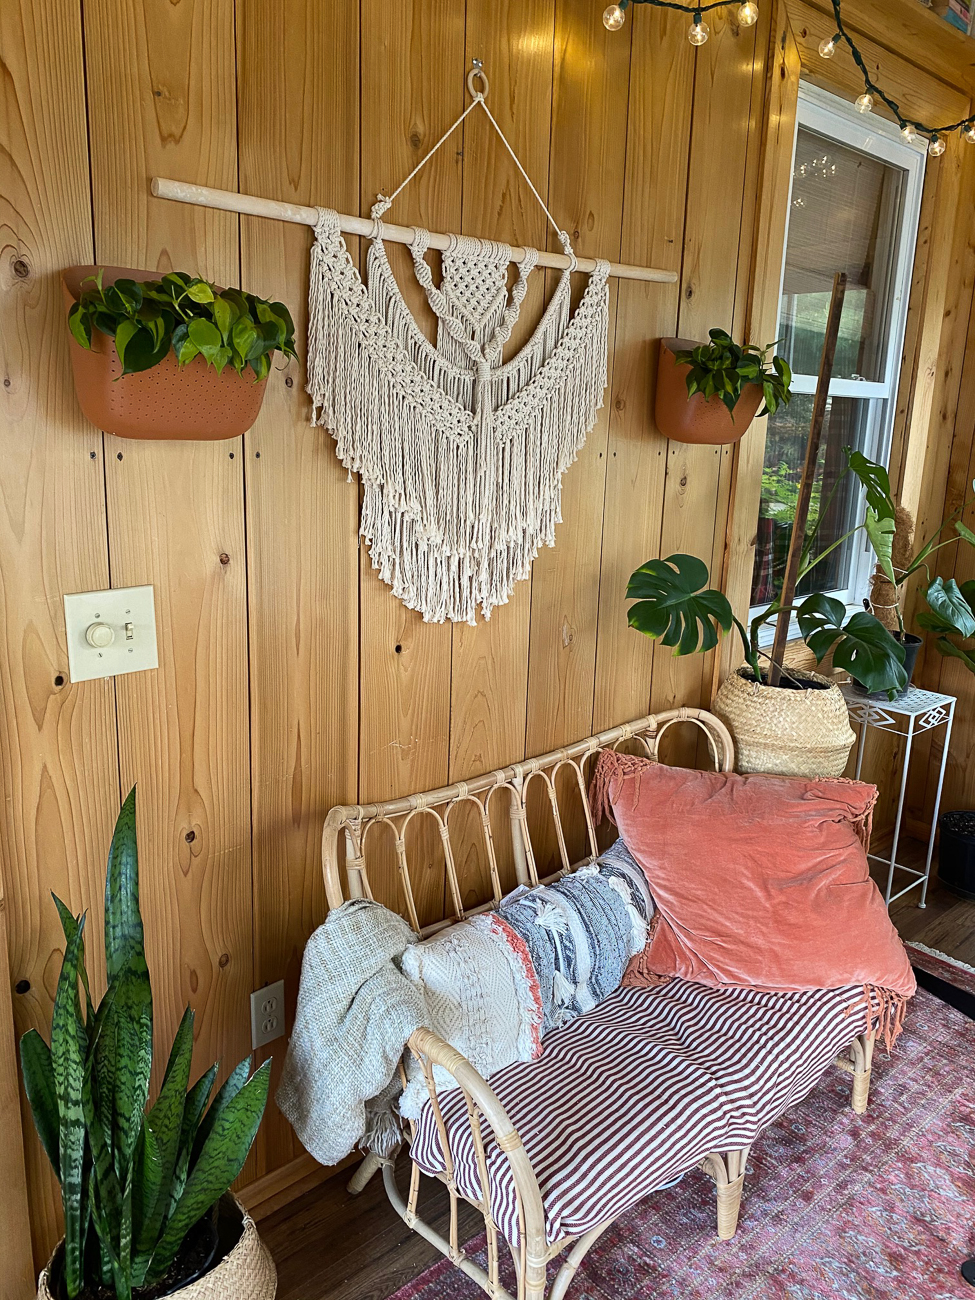 "Kathy Williams (IG: foliagecincy) from Sayler Park / ""This is the second year for my plant room. The huge southern facing windows and summer humidity make it the perfect home for my tropical foliage plants. What inspired this room was my need for a place to relax. I was a new stay at home mom and needed my own space to decompress in at the end of the day. My plants are not just a hobby, but a form of self-care."" / Image courtesy of Kathy Williams // Published: 6.13.20"